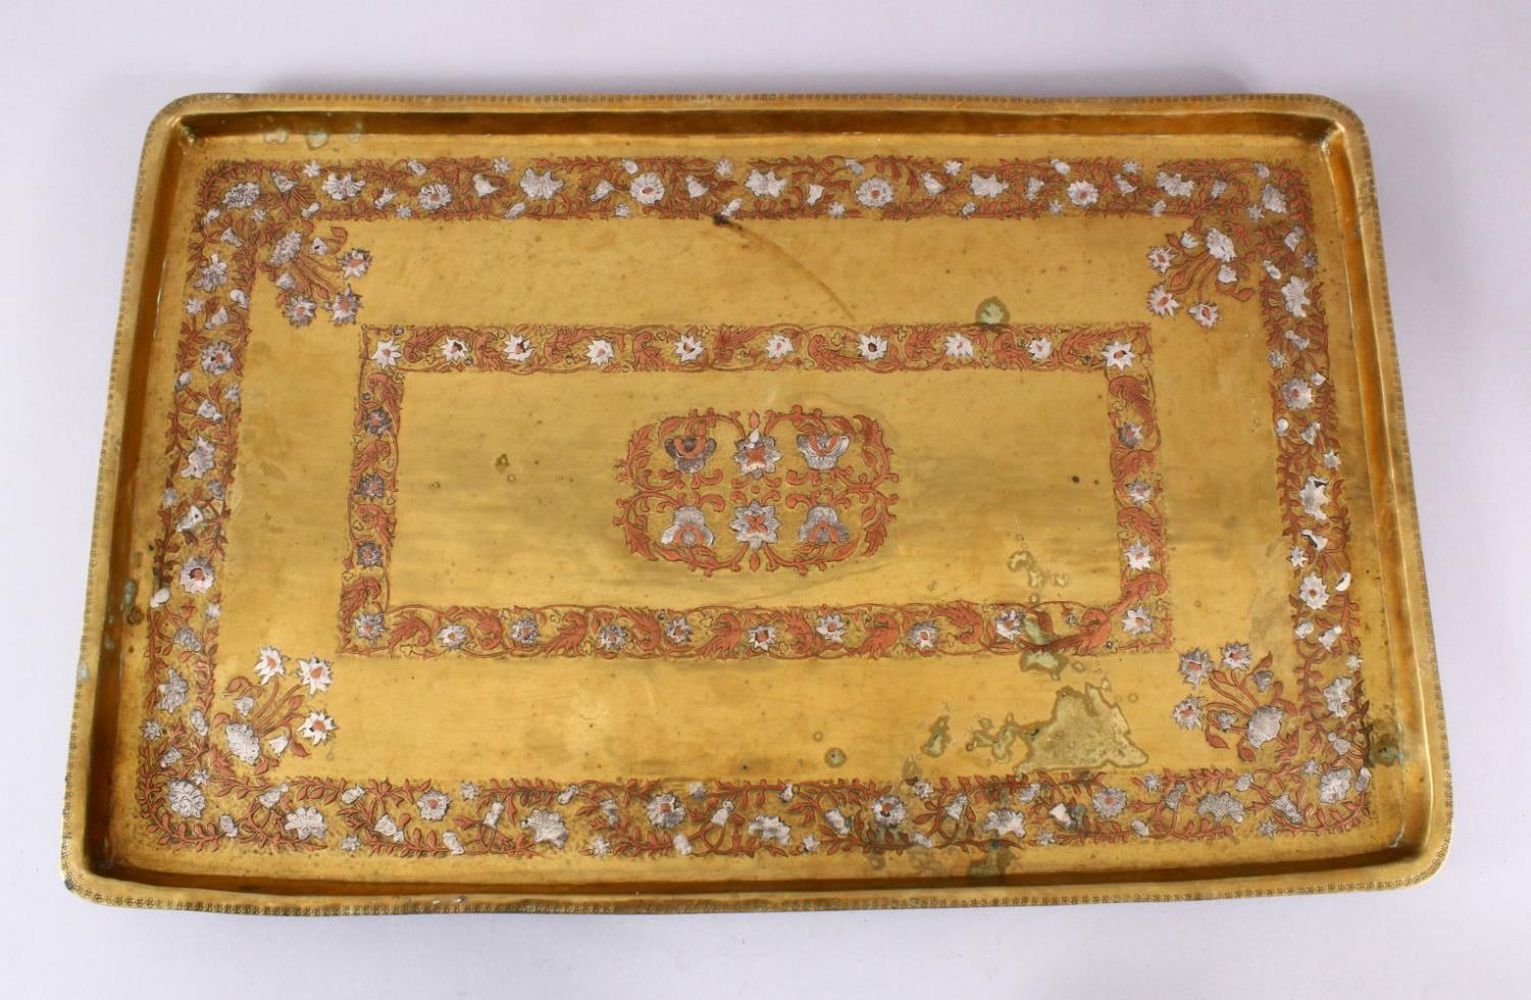 A LARGE EARLY 19TH CENTURY SOUTH INDIAN TANJORE SILVER AND COPPER INLAID RECTANGULAR TRAY, 59cm x